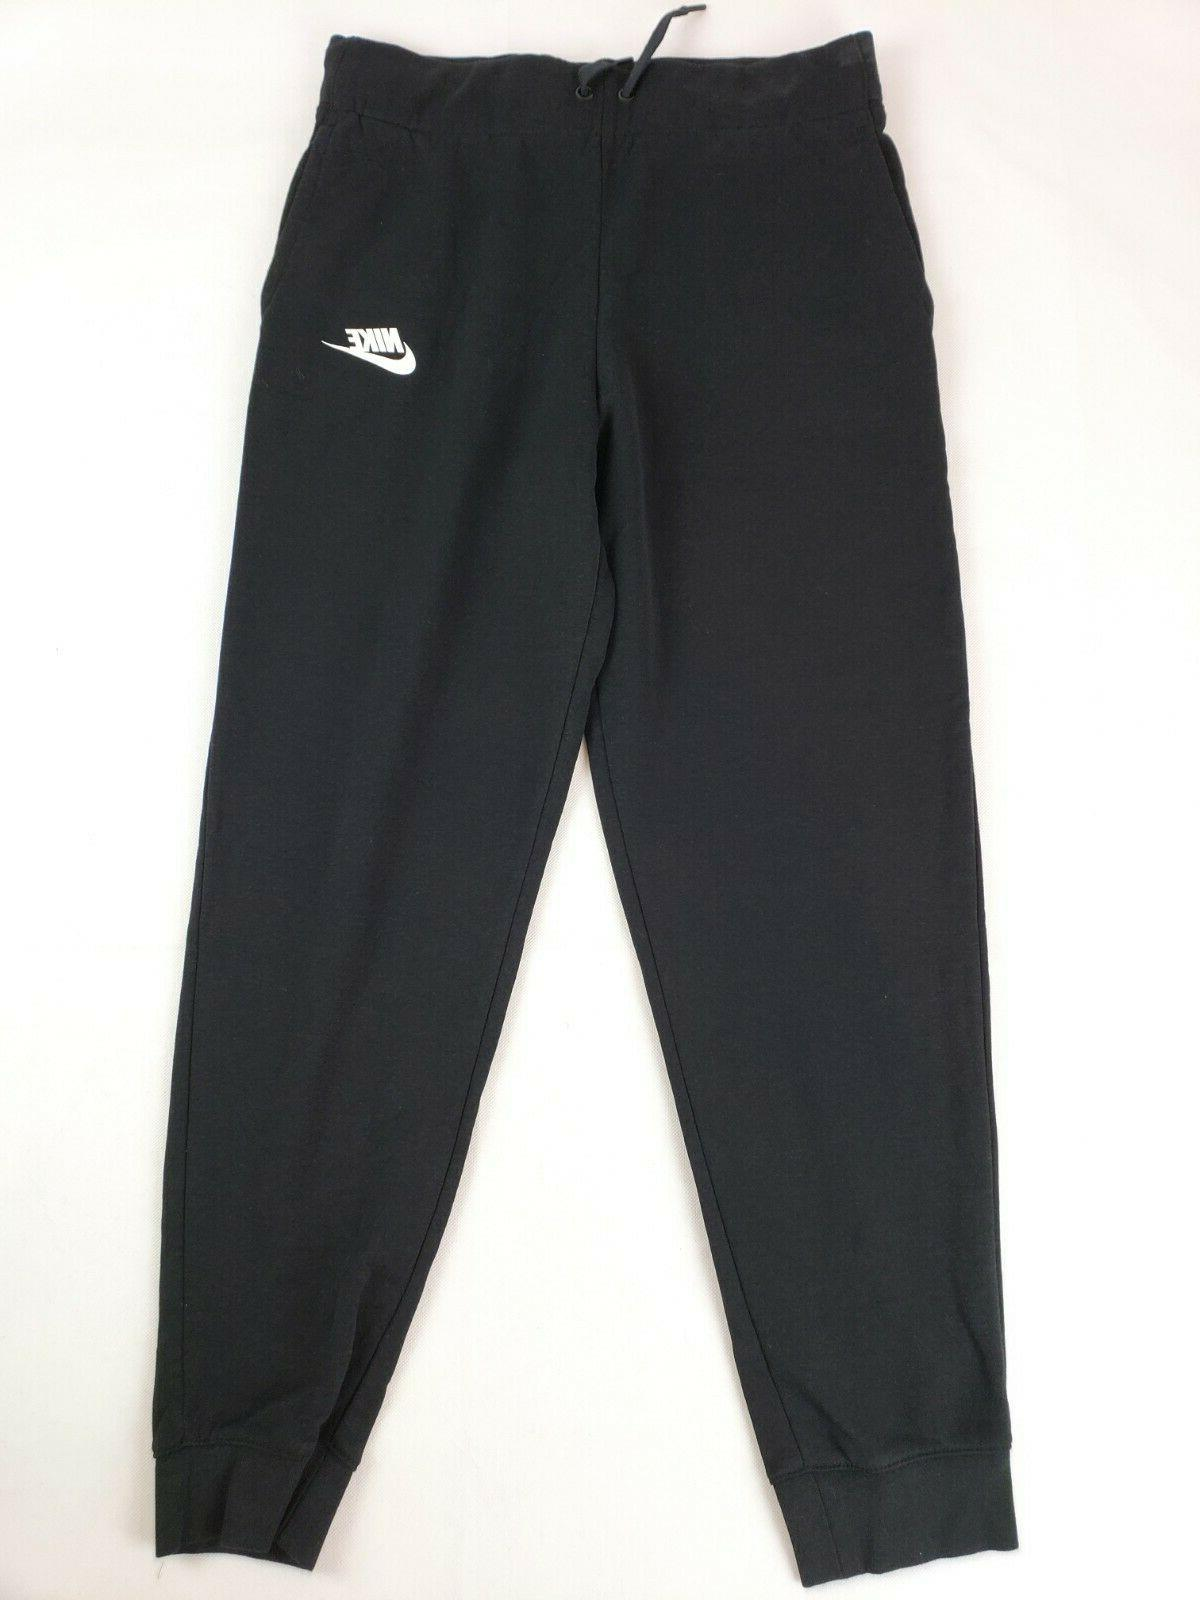 sportswear girls pants black white x large